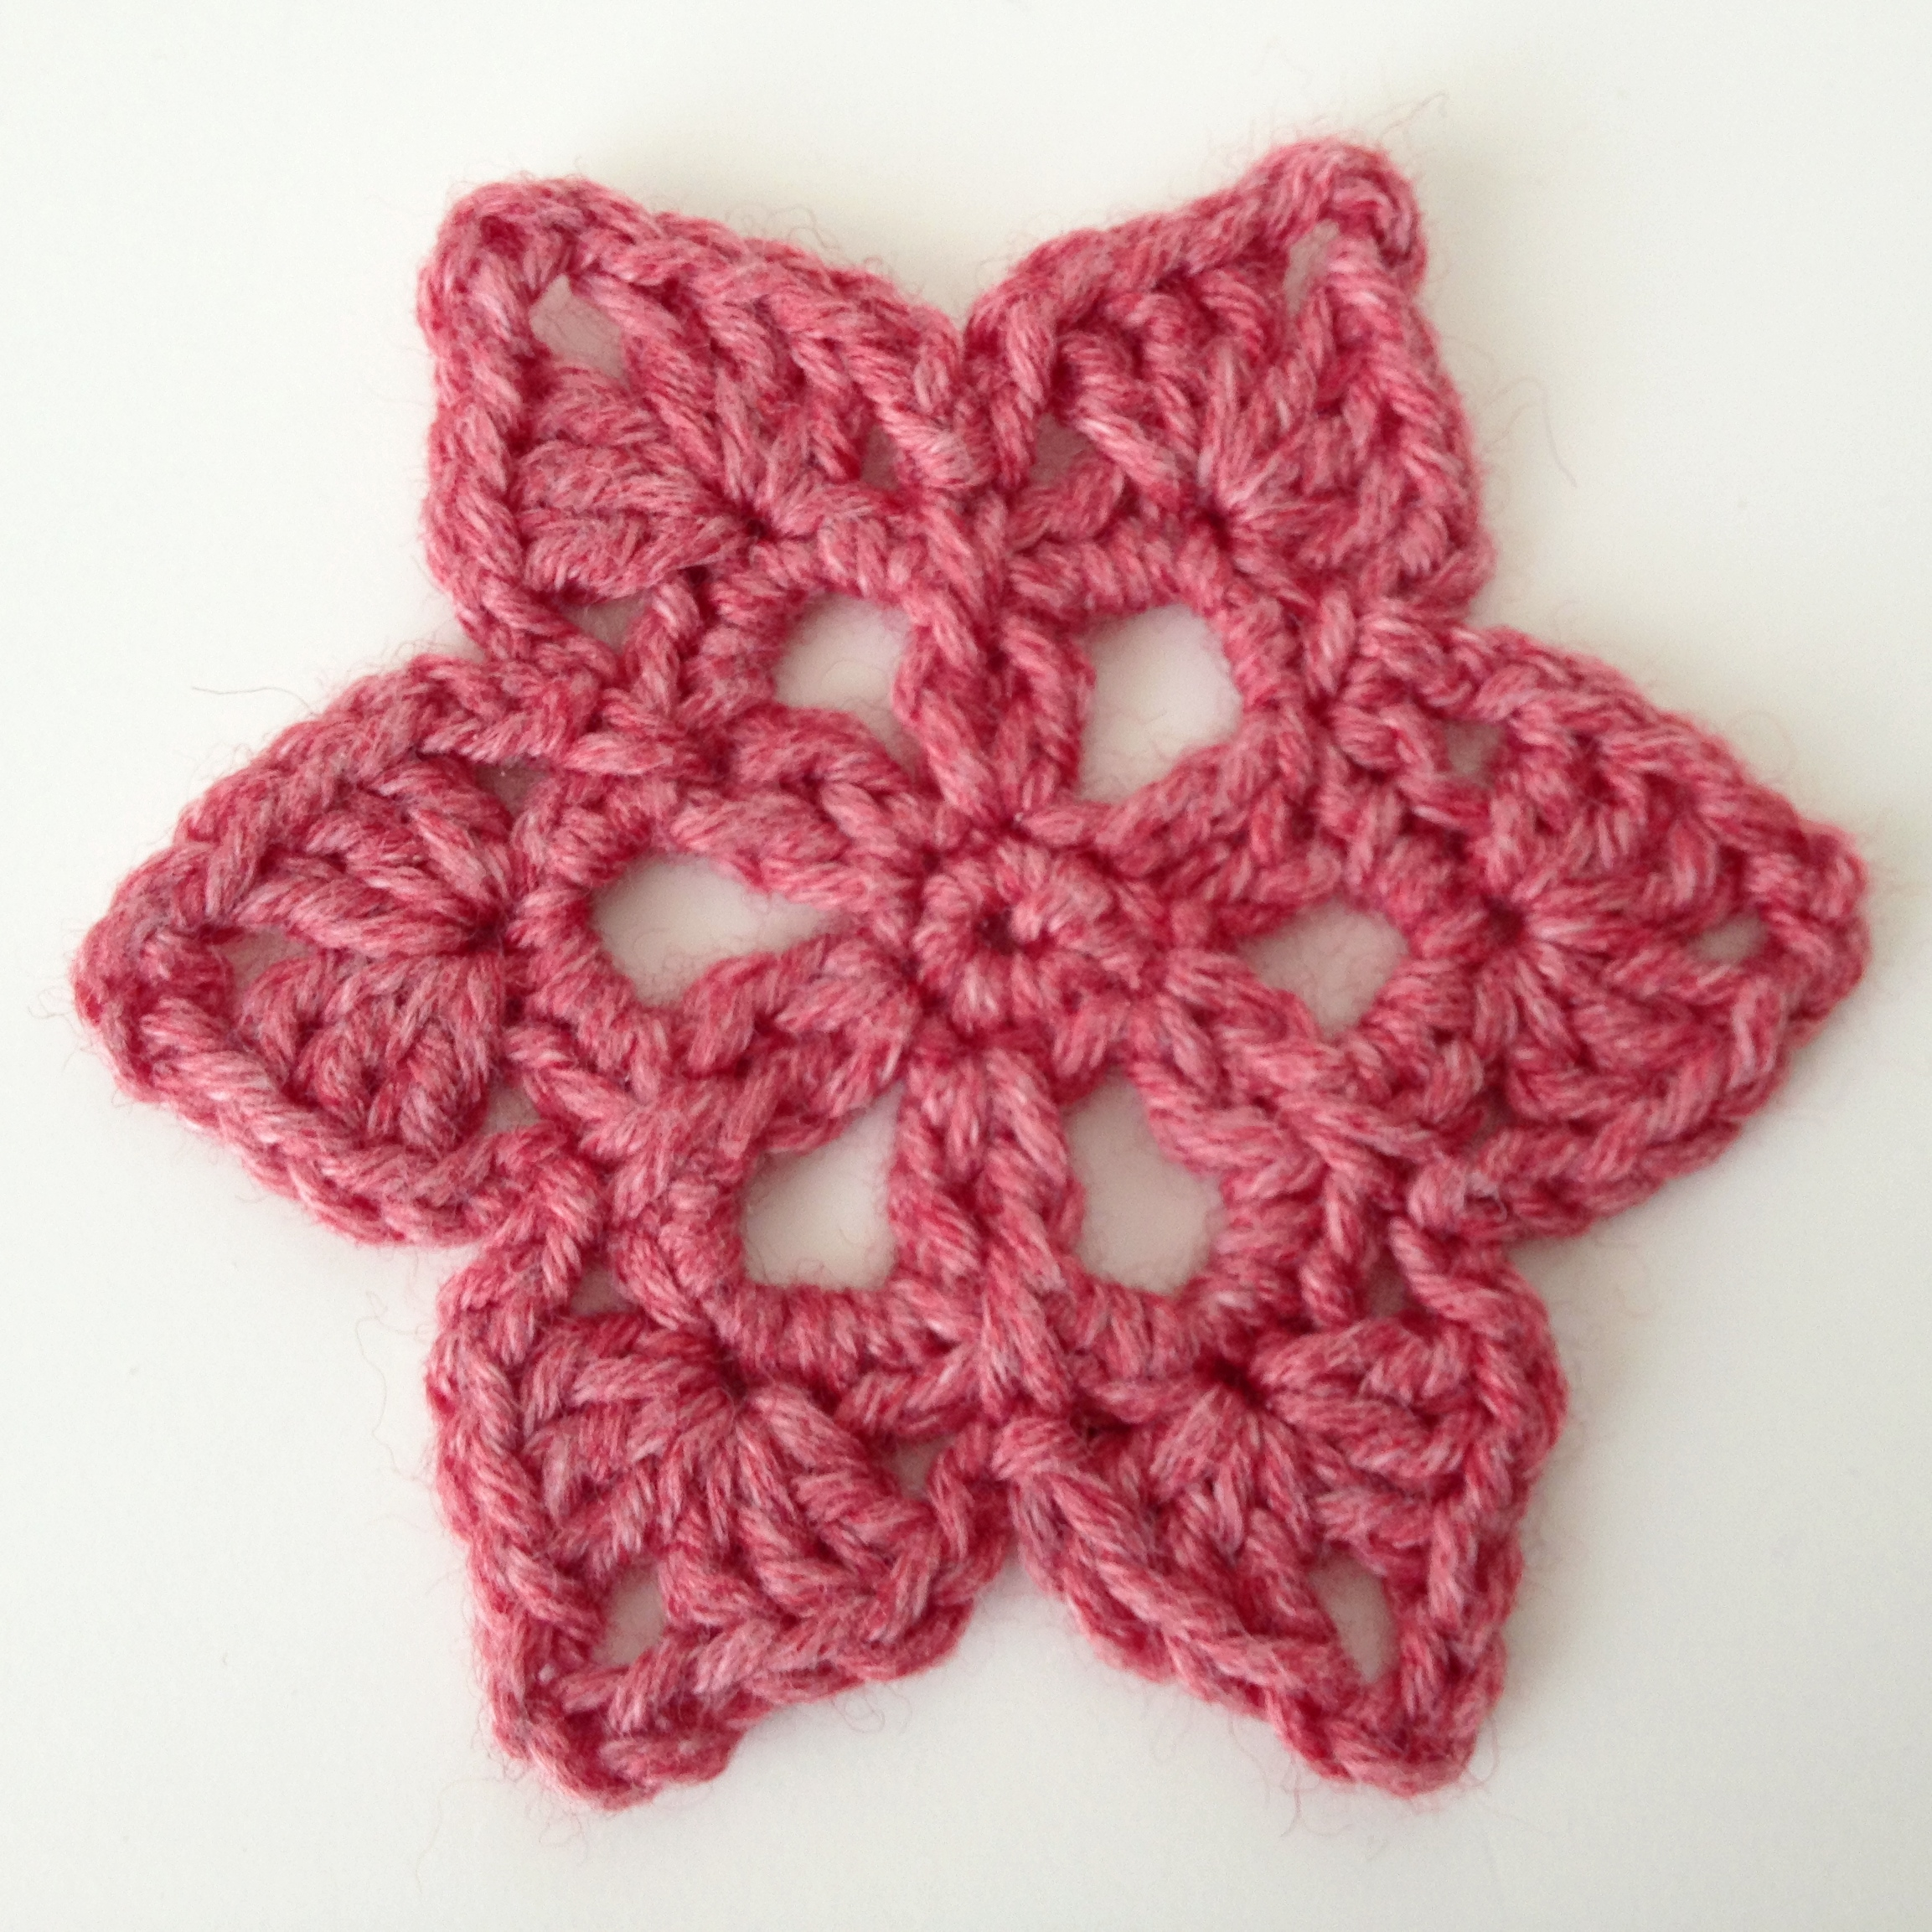 Crocheting Videos : Crochet motif #36 from the book ?Beyond the square Crochet motifs?